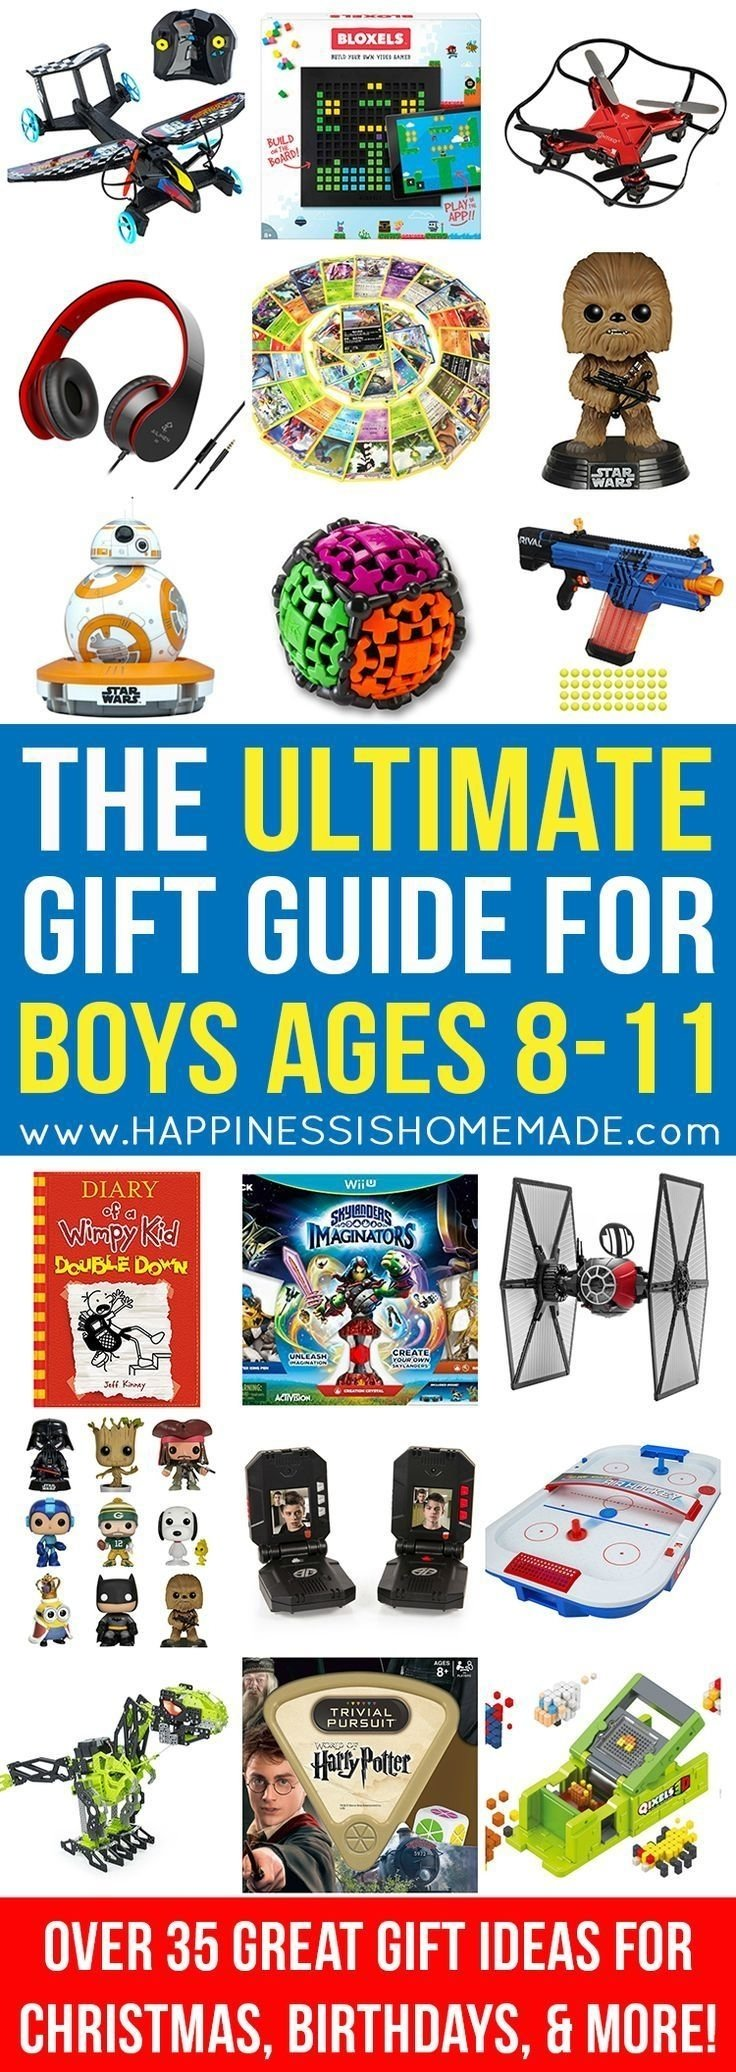 10 Trendy Gift Ideas For Boys Age 9 29 best gift guide age 9 images on pinterest christmas gift ideas 2021